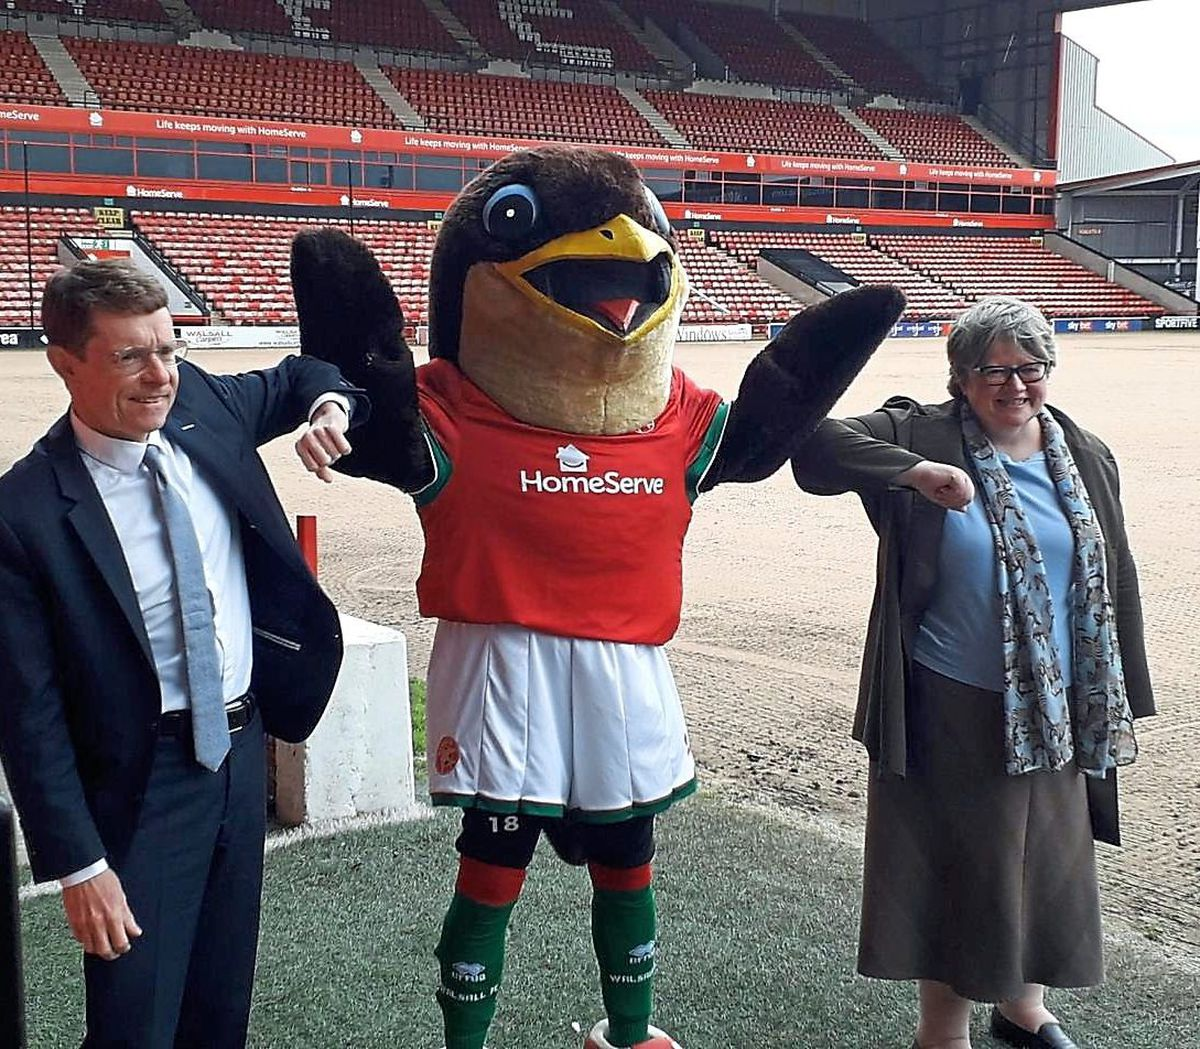 Mayor of the West Midlands Andy Street, Walsall FC mascot Swifty and Secretary of State for Work and Pensions Thérèse Coffey are pictured during a recent visit to see the Kickstart scheme in action at the club